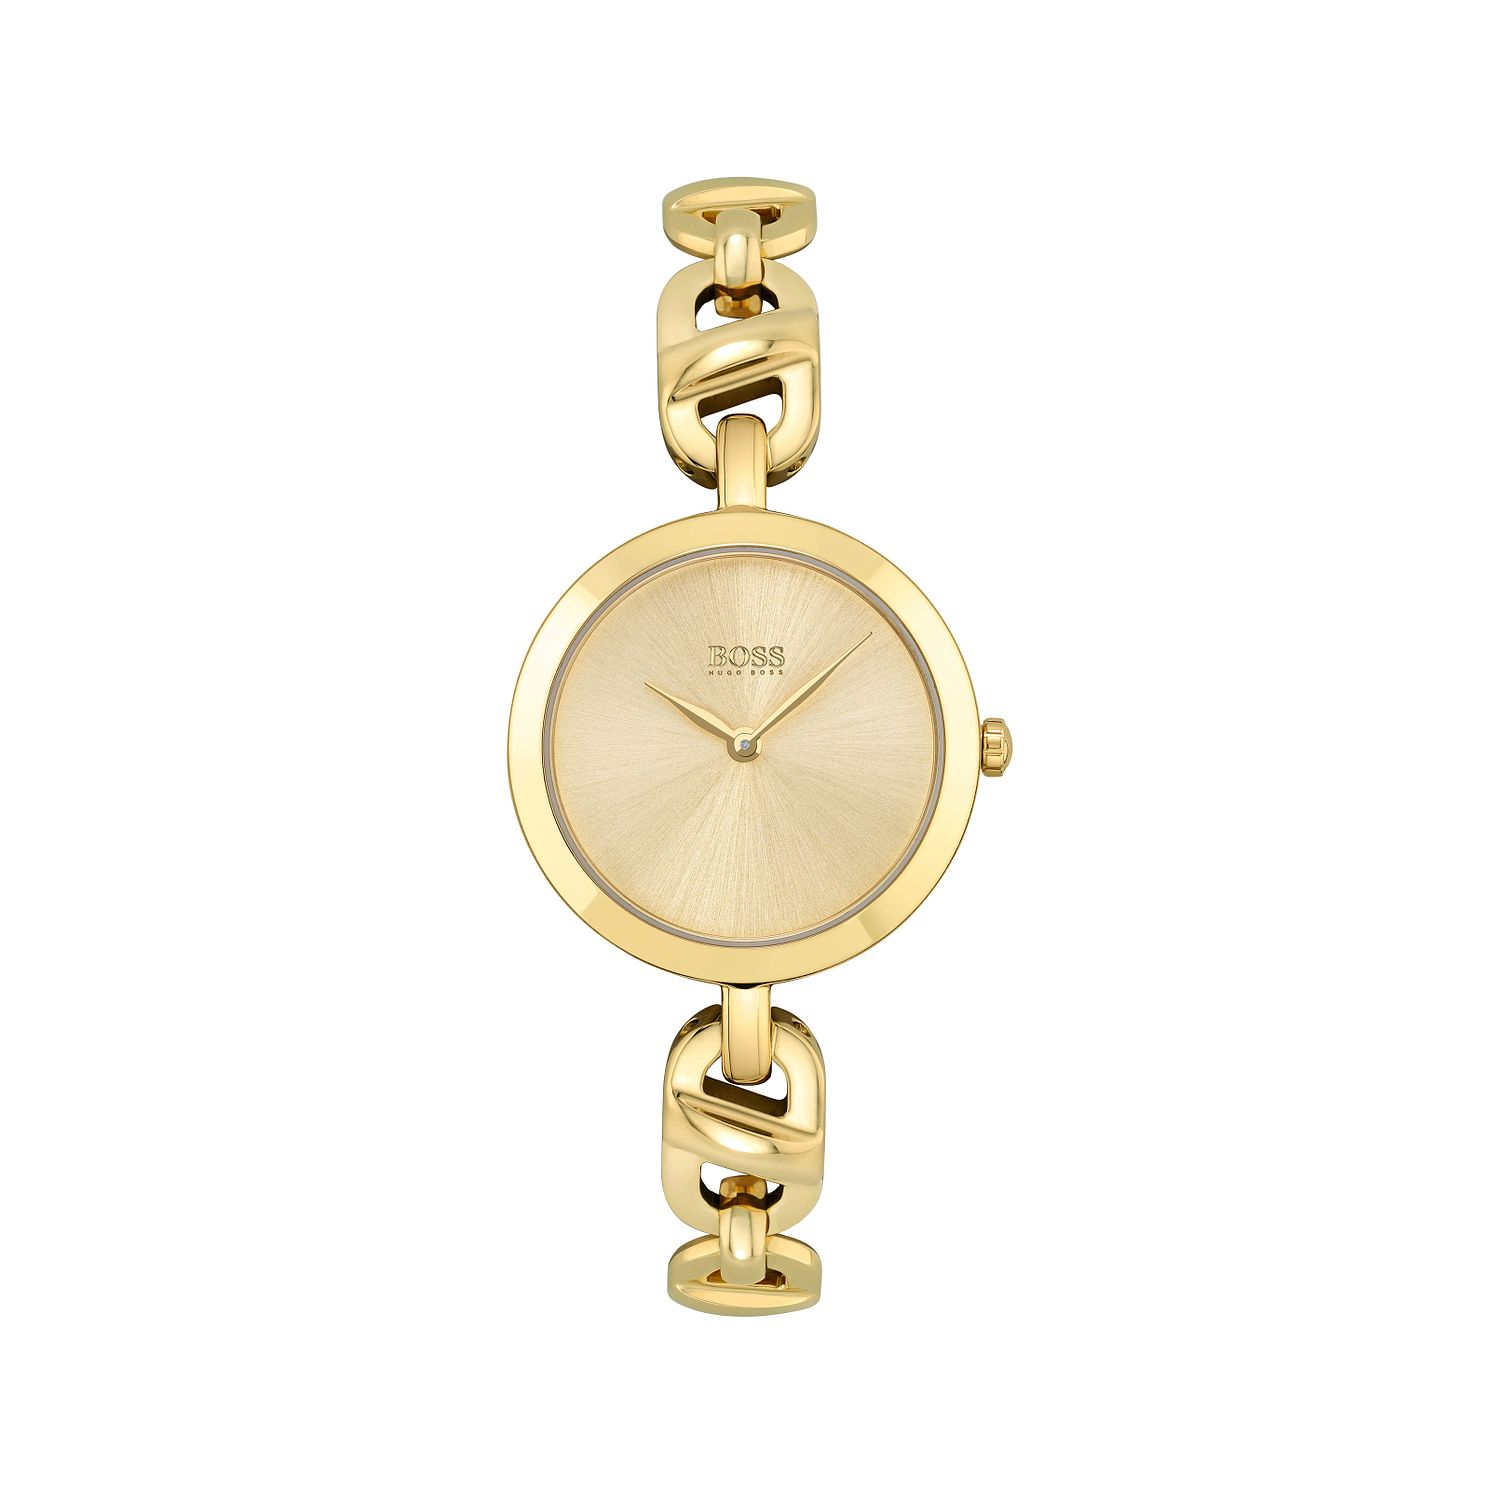 BOSS Chain Ladies' Yellow Gold Tone Bracelet Watch - Product number 1201786